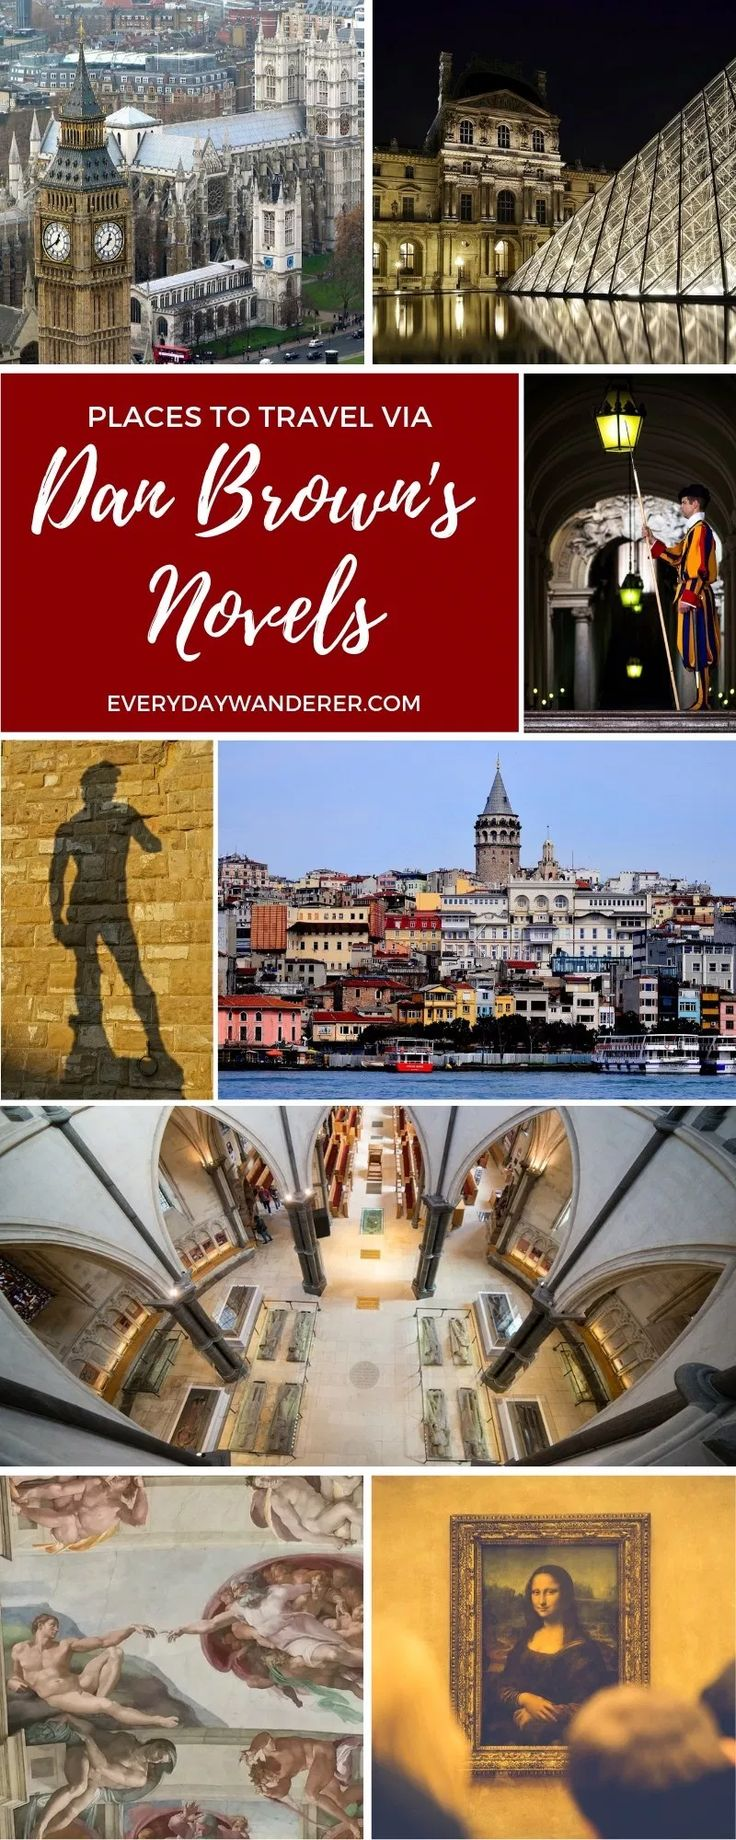 Places to Visit in Dan Brown Novels (from Angels and Demons to Origin)